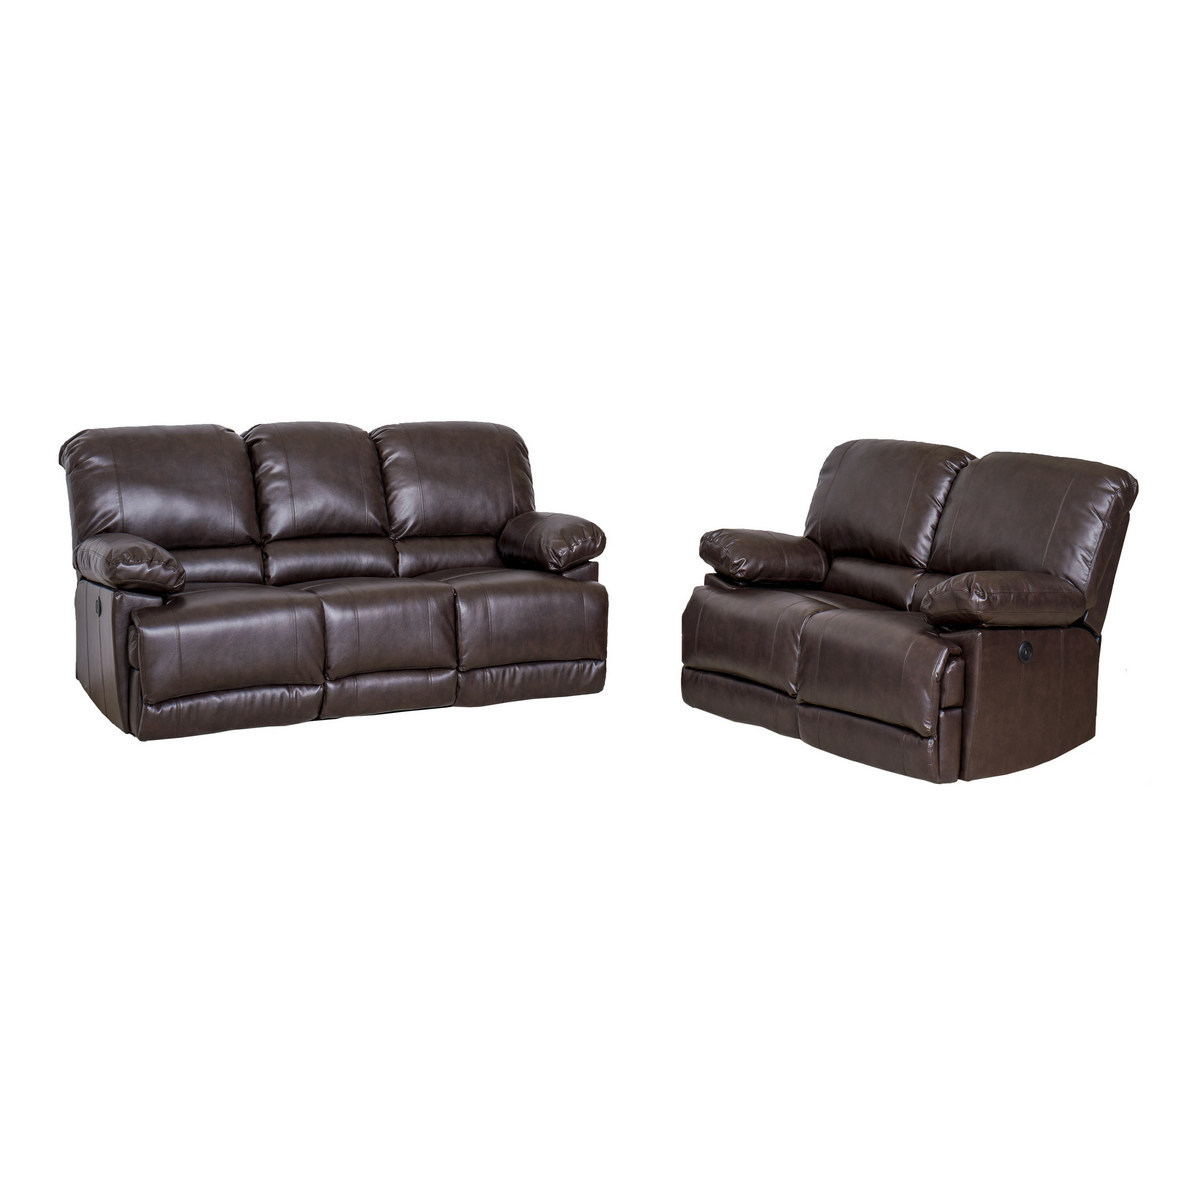 Corliving Lea Chocolate Brown Bonded Leather Power Recliner Sofa Chair Set